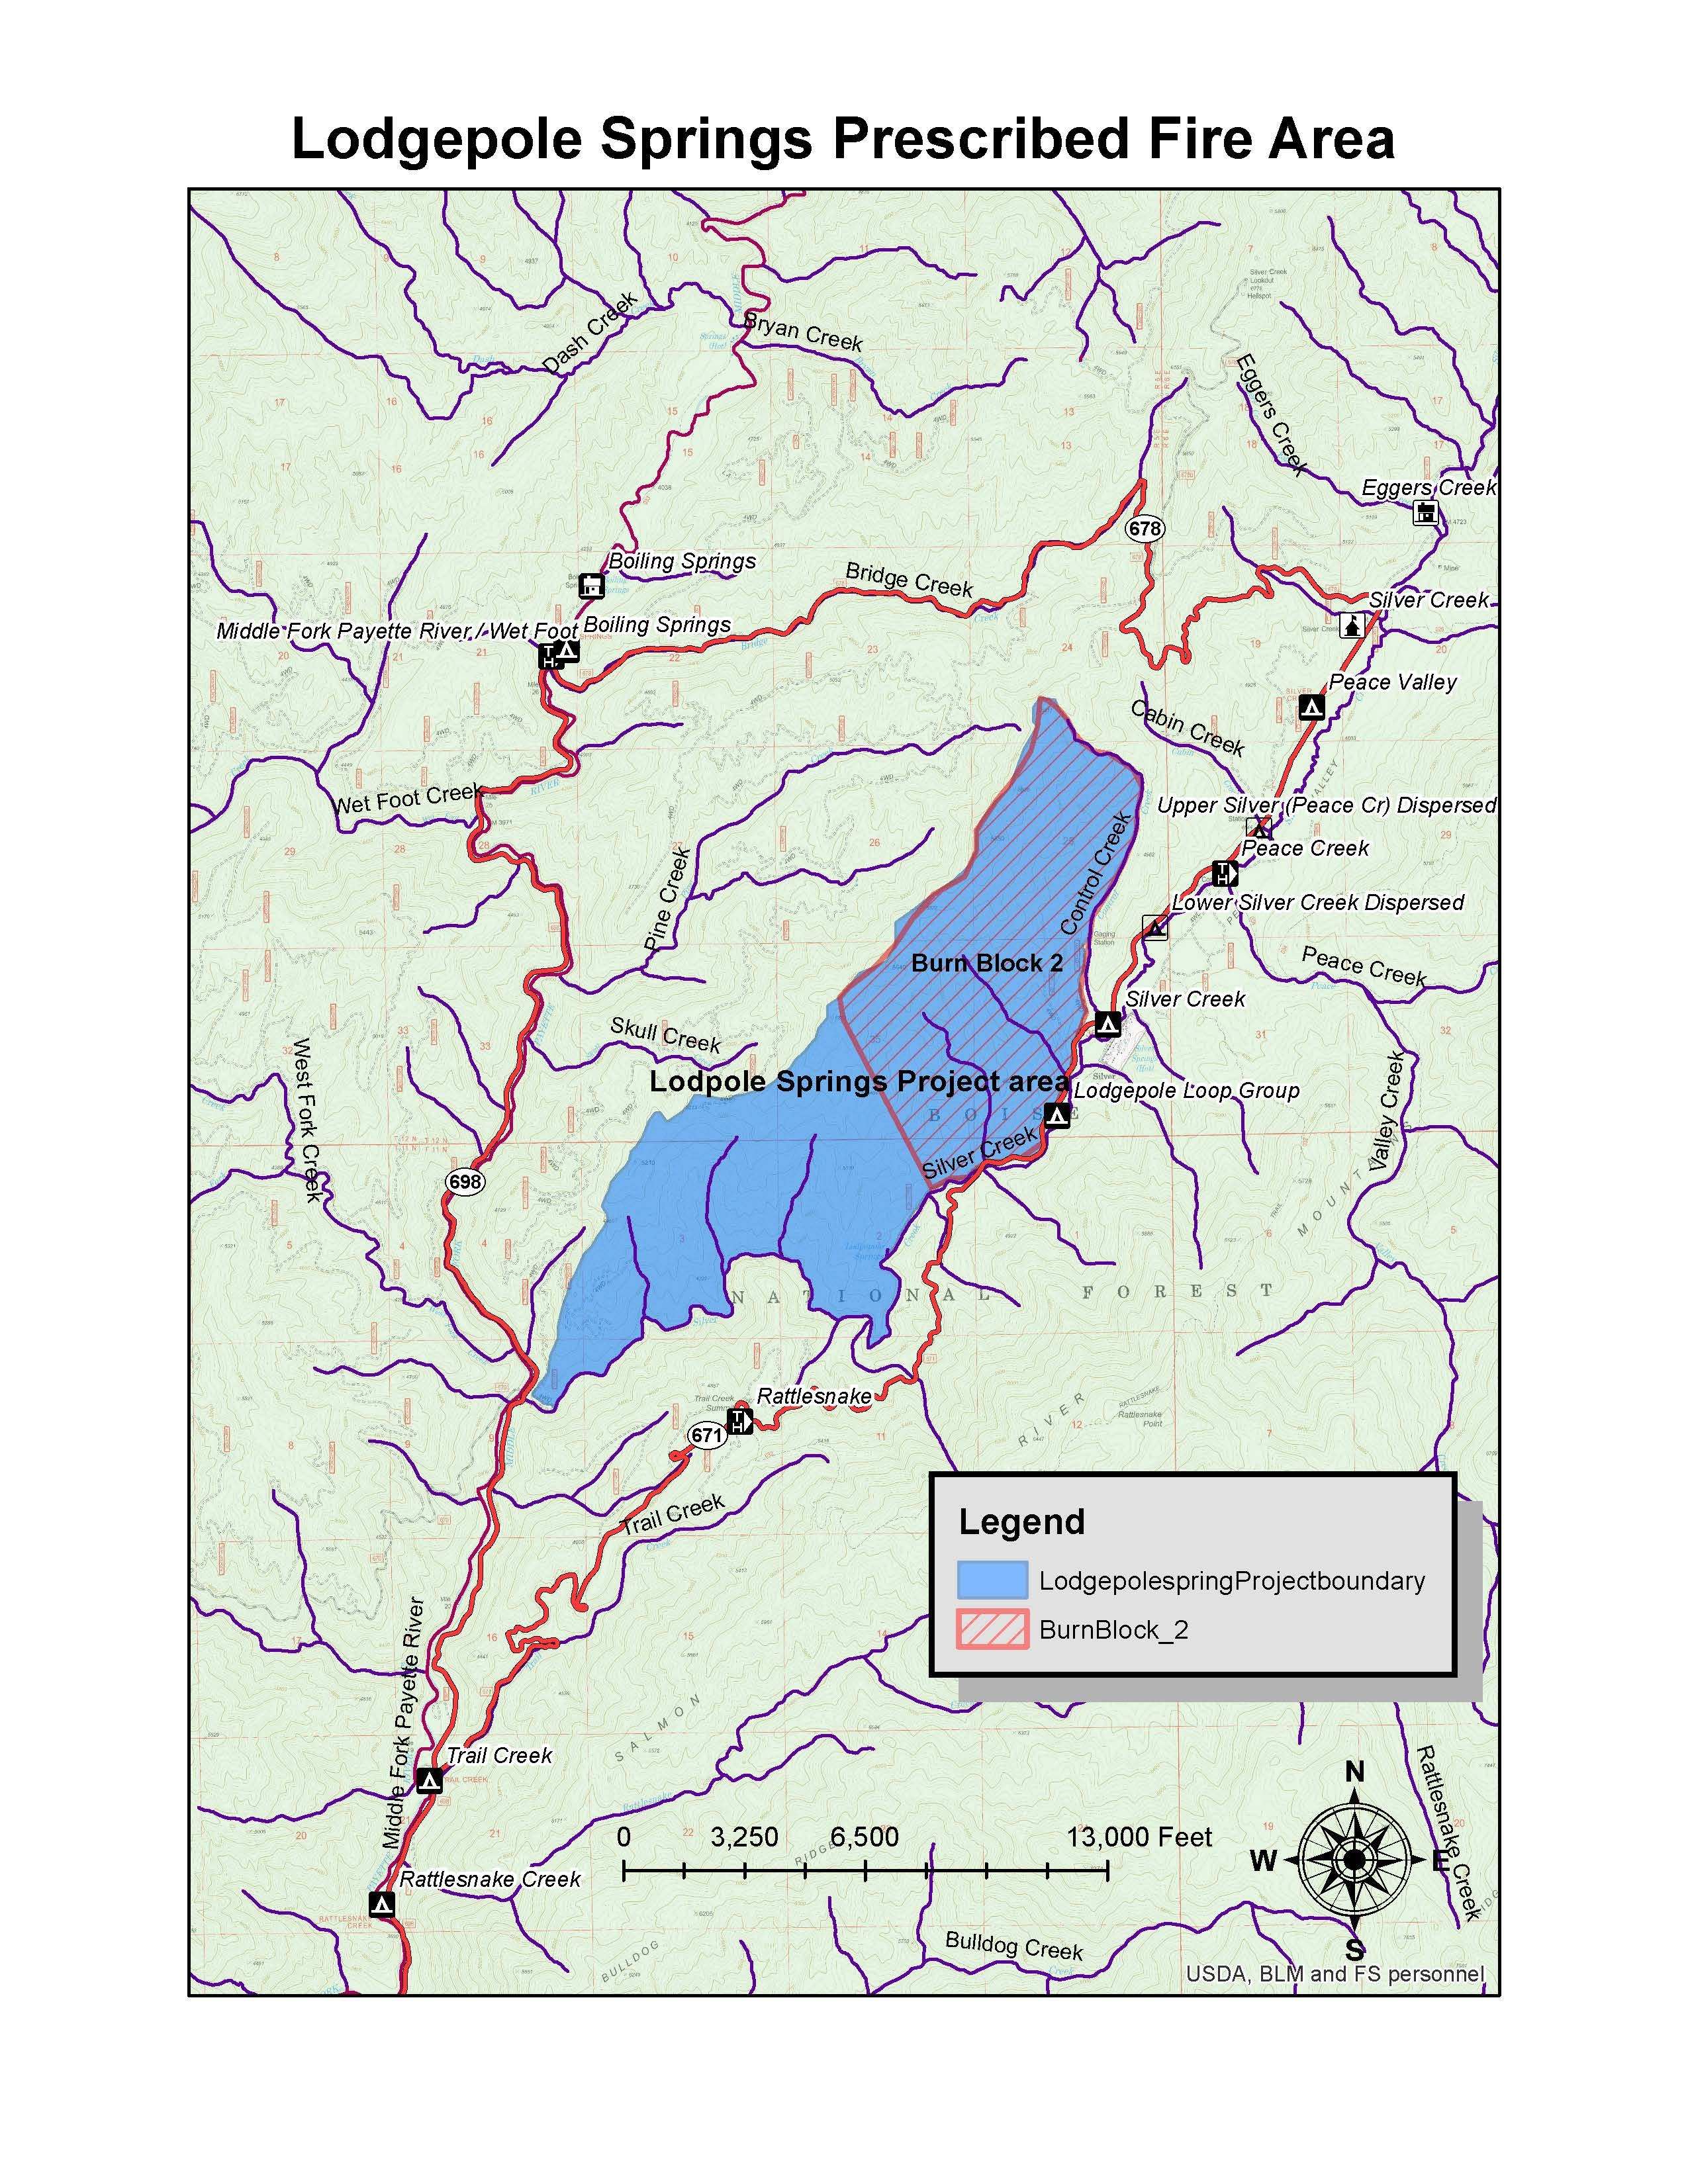 A photo of a map of a prescribed fire area